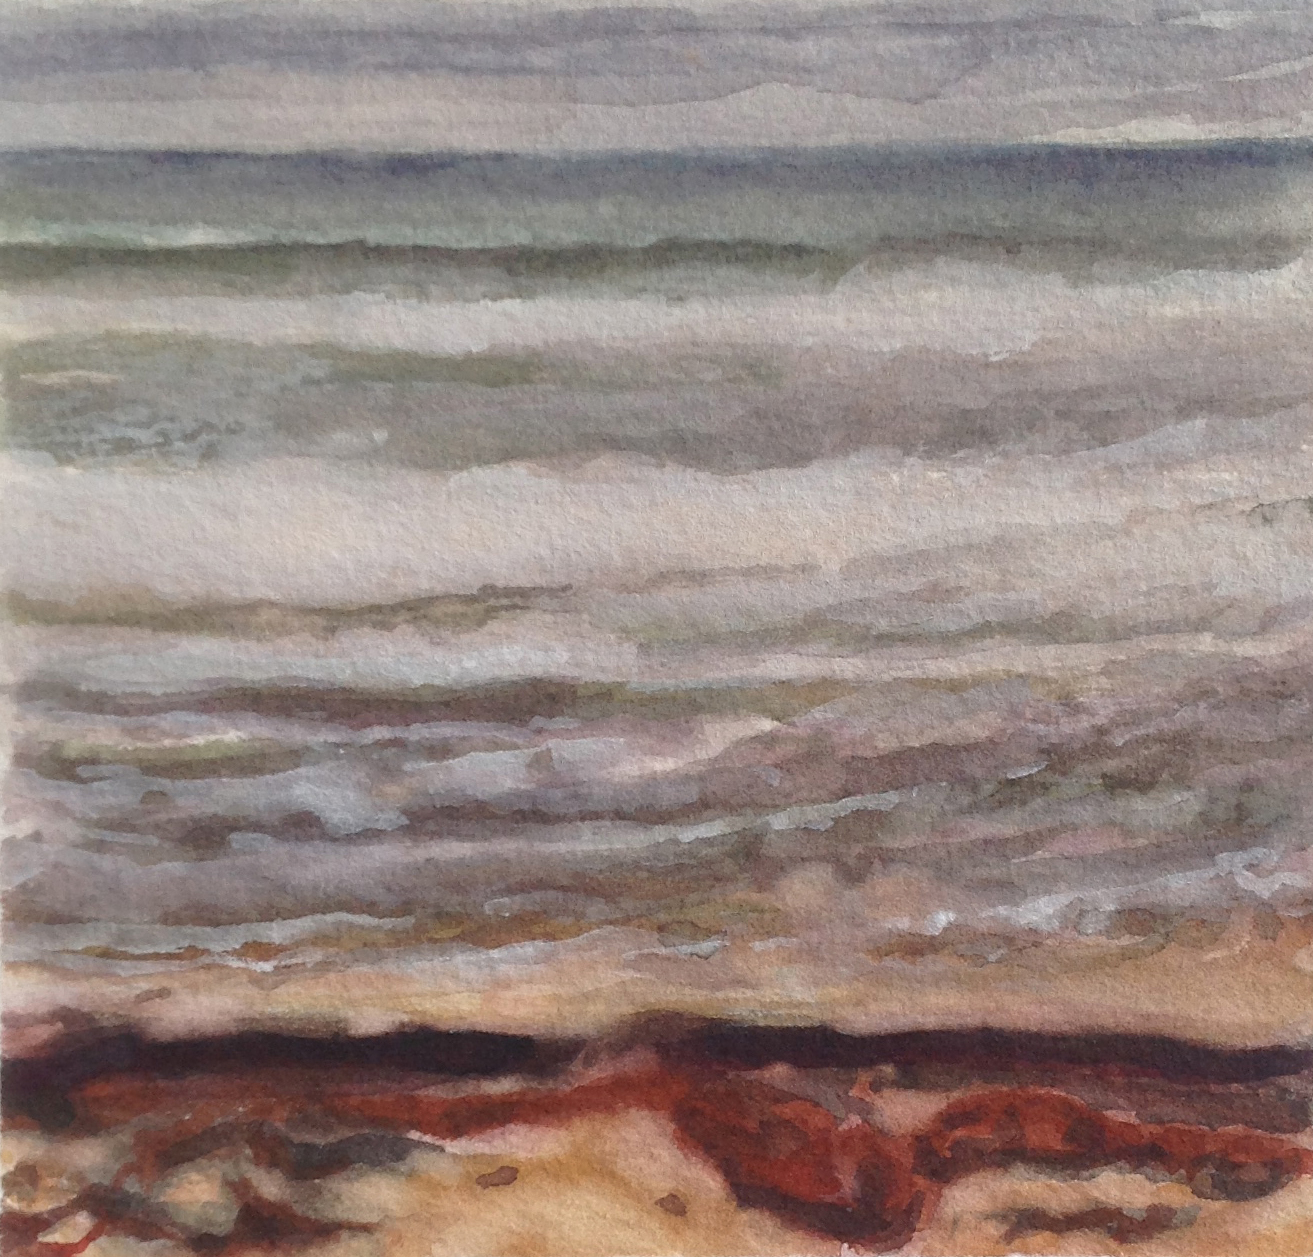 SQUIBNOCKET TIDE 2015, 3 x 3 inches © 2016, Michael Kirk all rights reserved